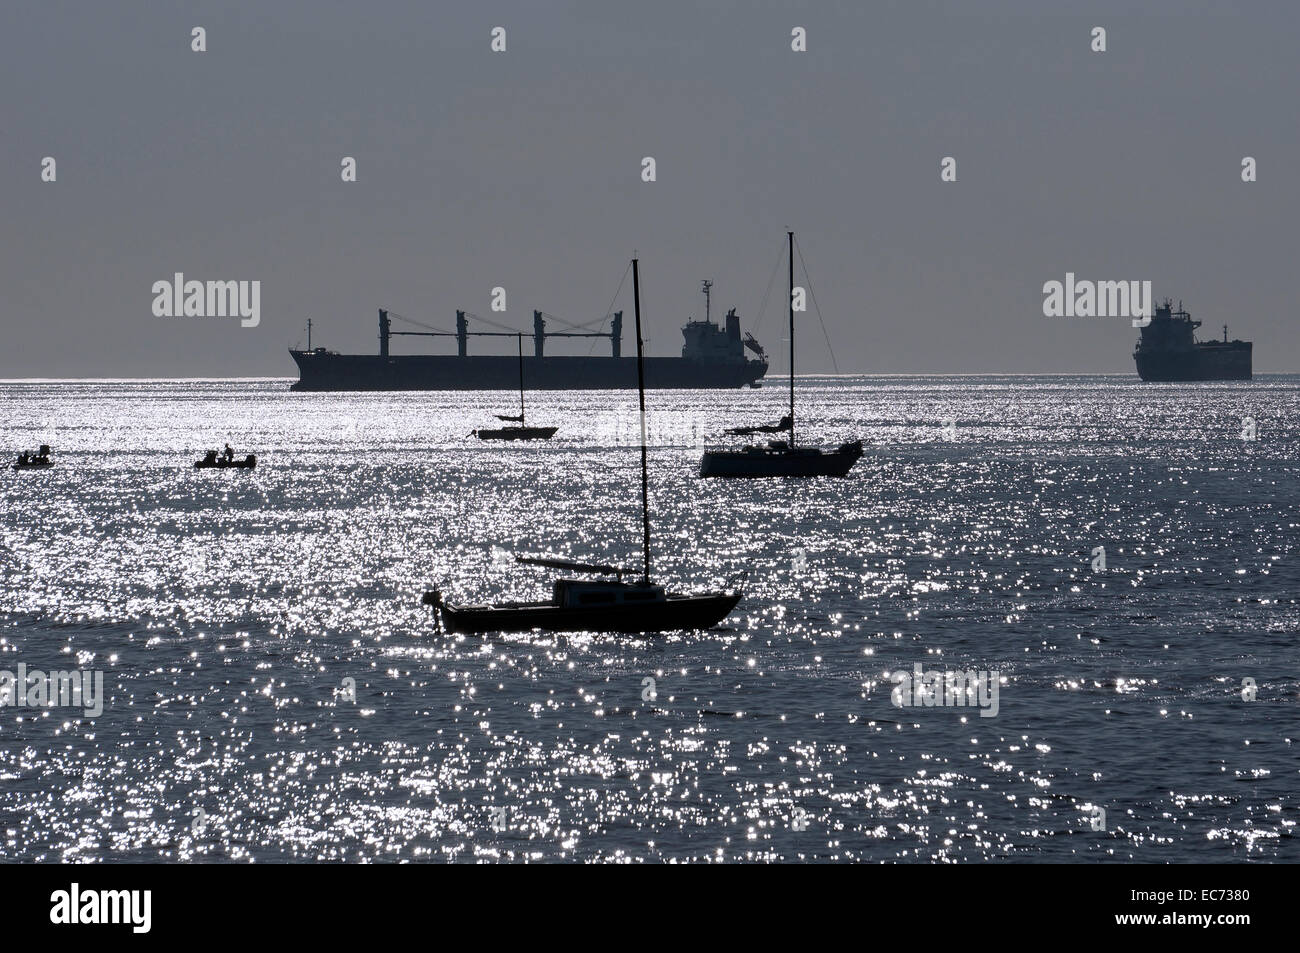 freighters-and-sailboats-at-anchor-in-en